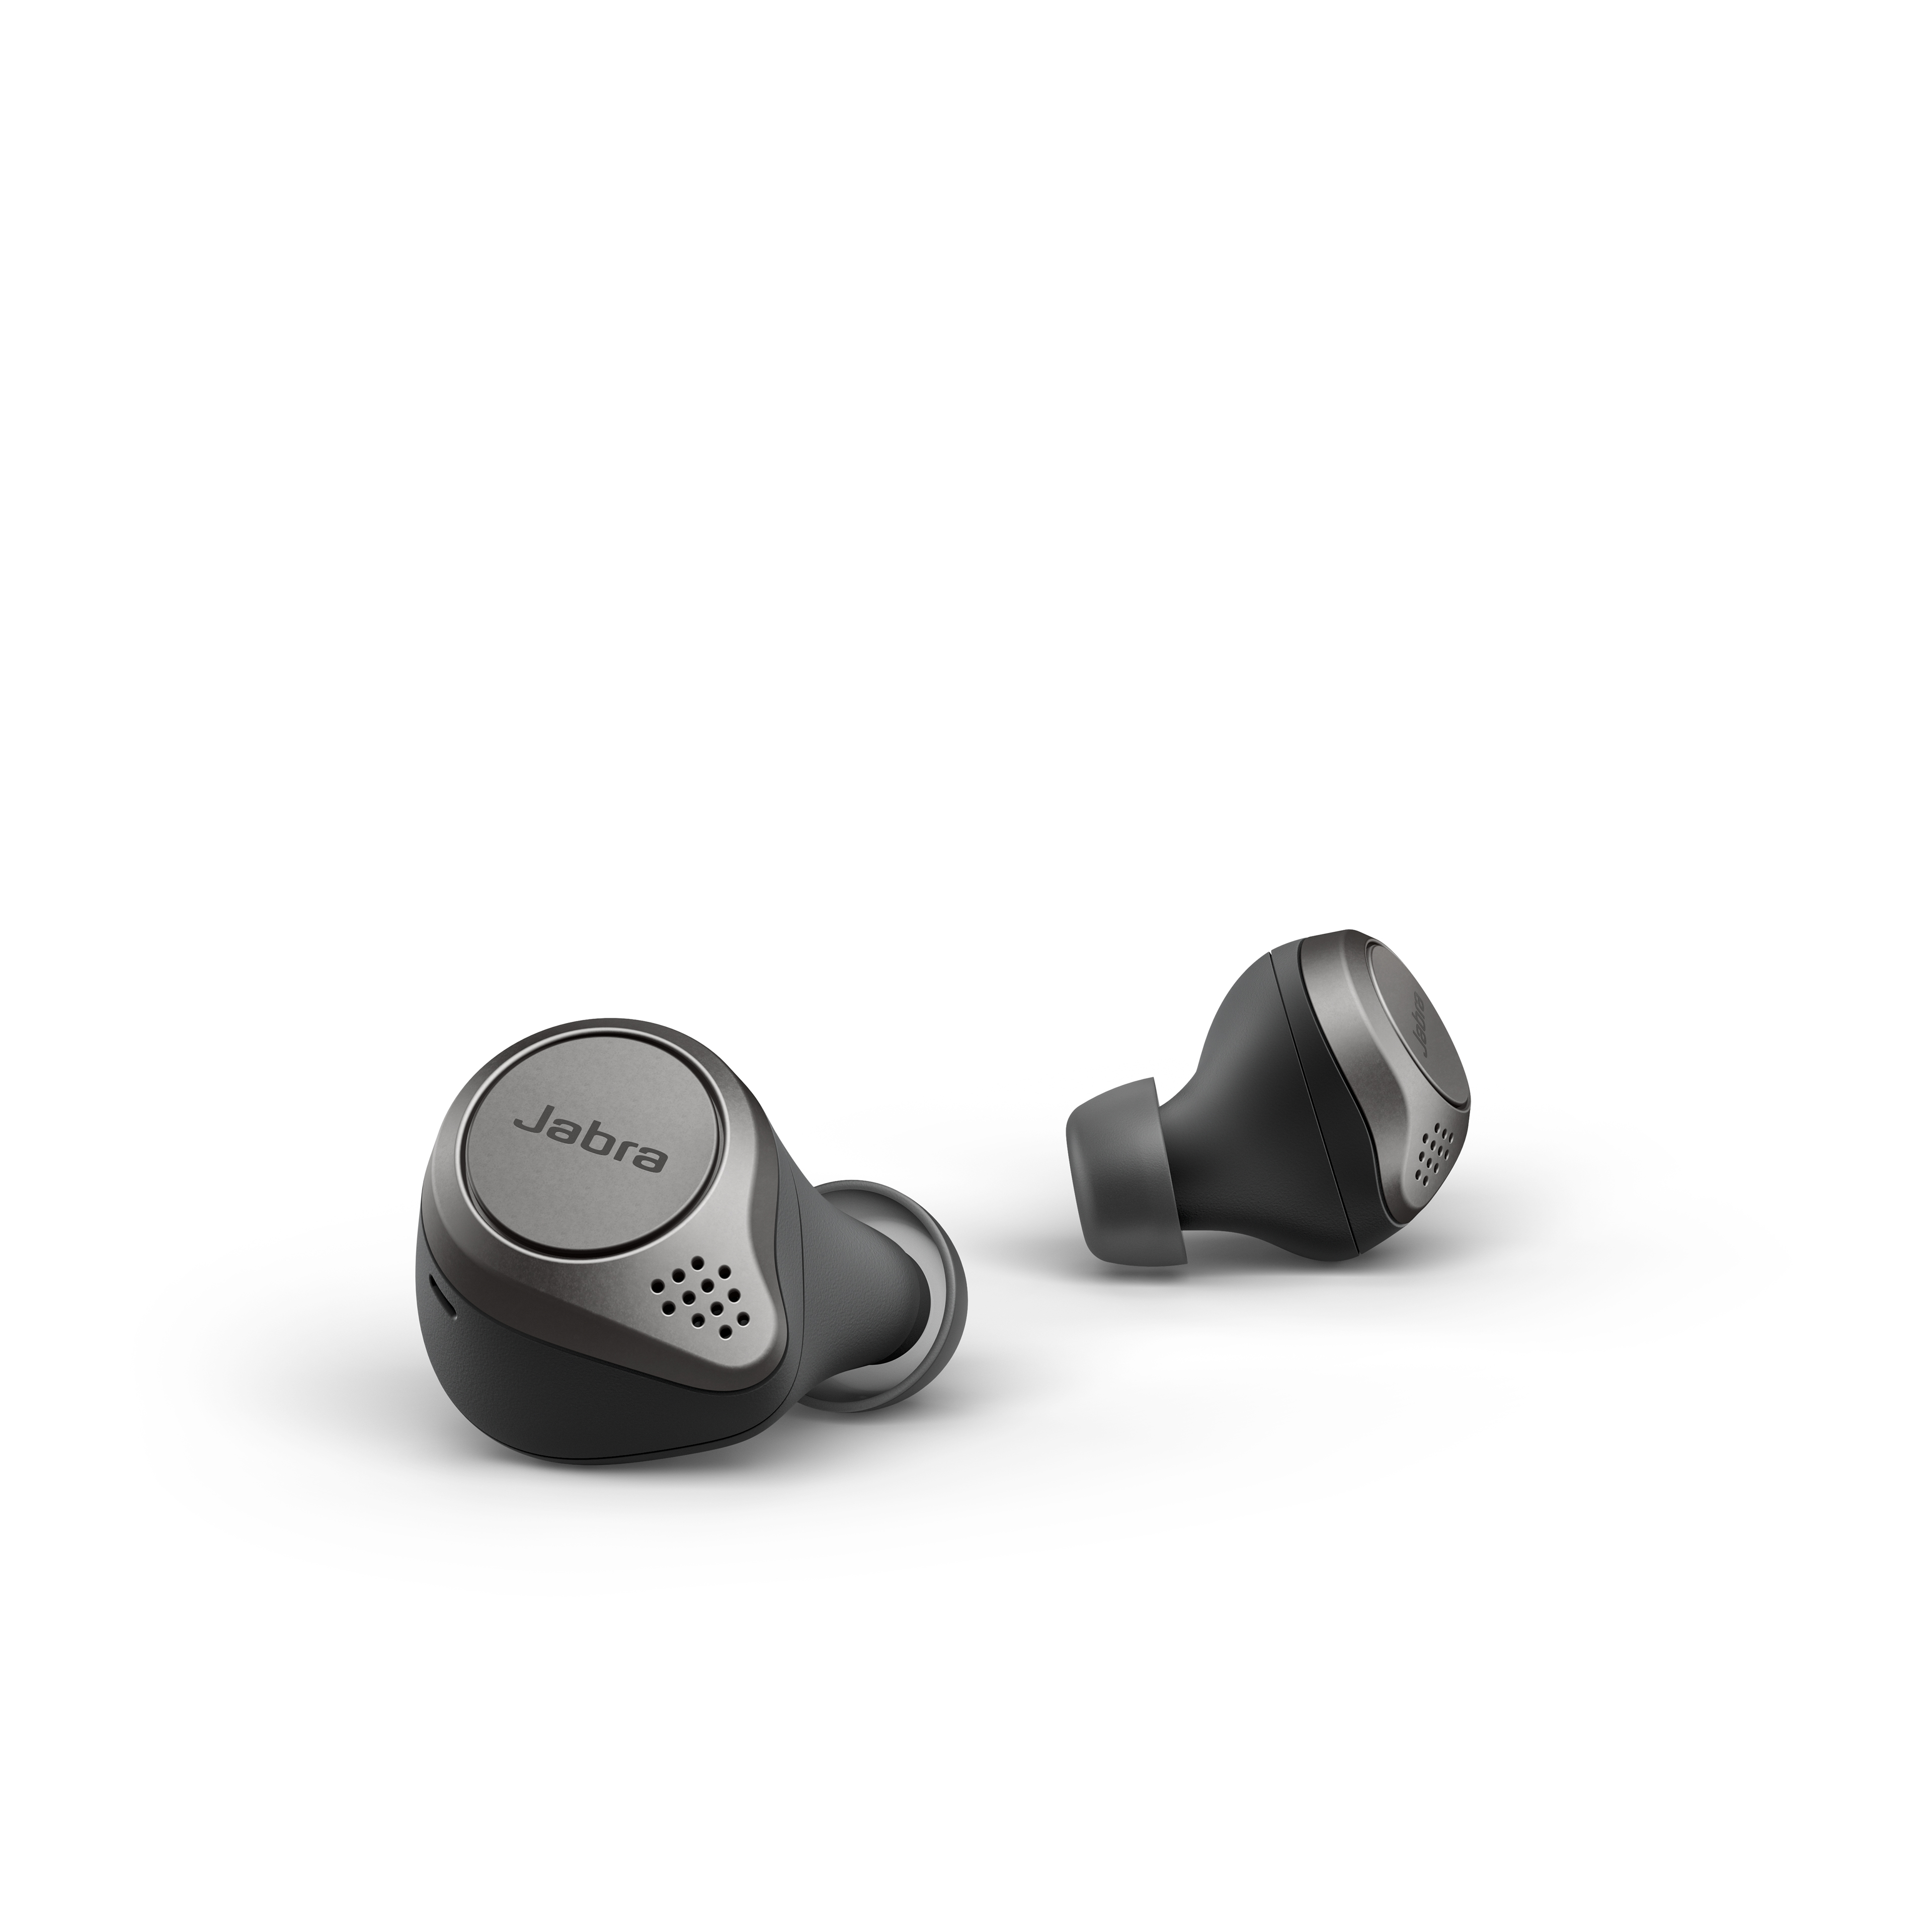 Jabra-Elite-75t-Voice-Assistant-True-Wireless-earbuds-Manufacturer-Refurbished thumbnail 19